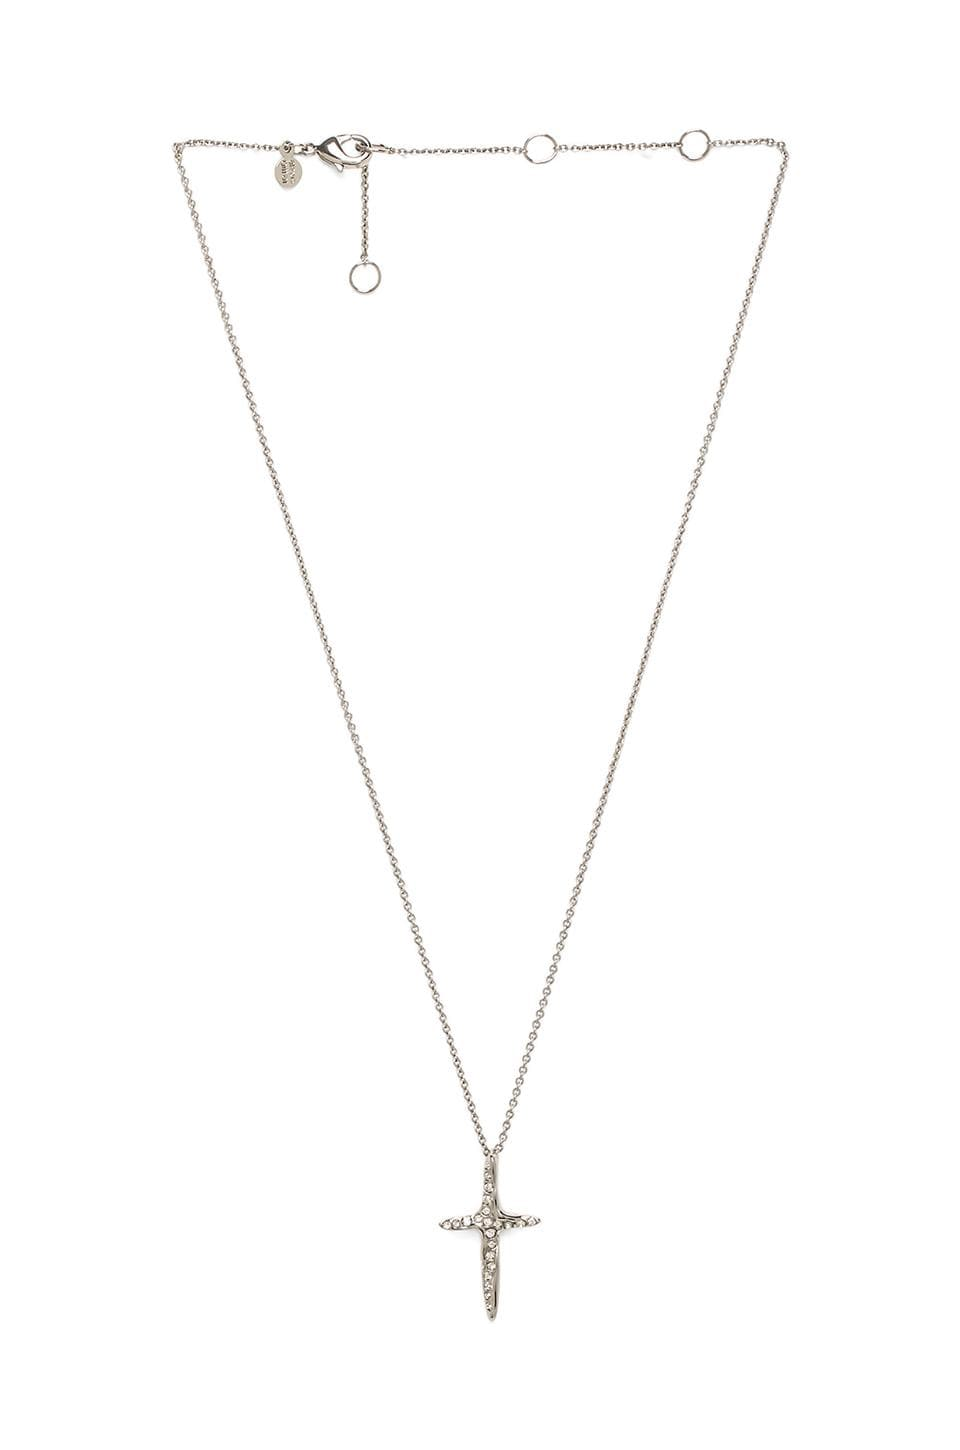 Alexis Bittar Liquid Cross Pendant in Rhodium